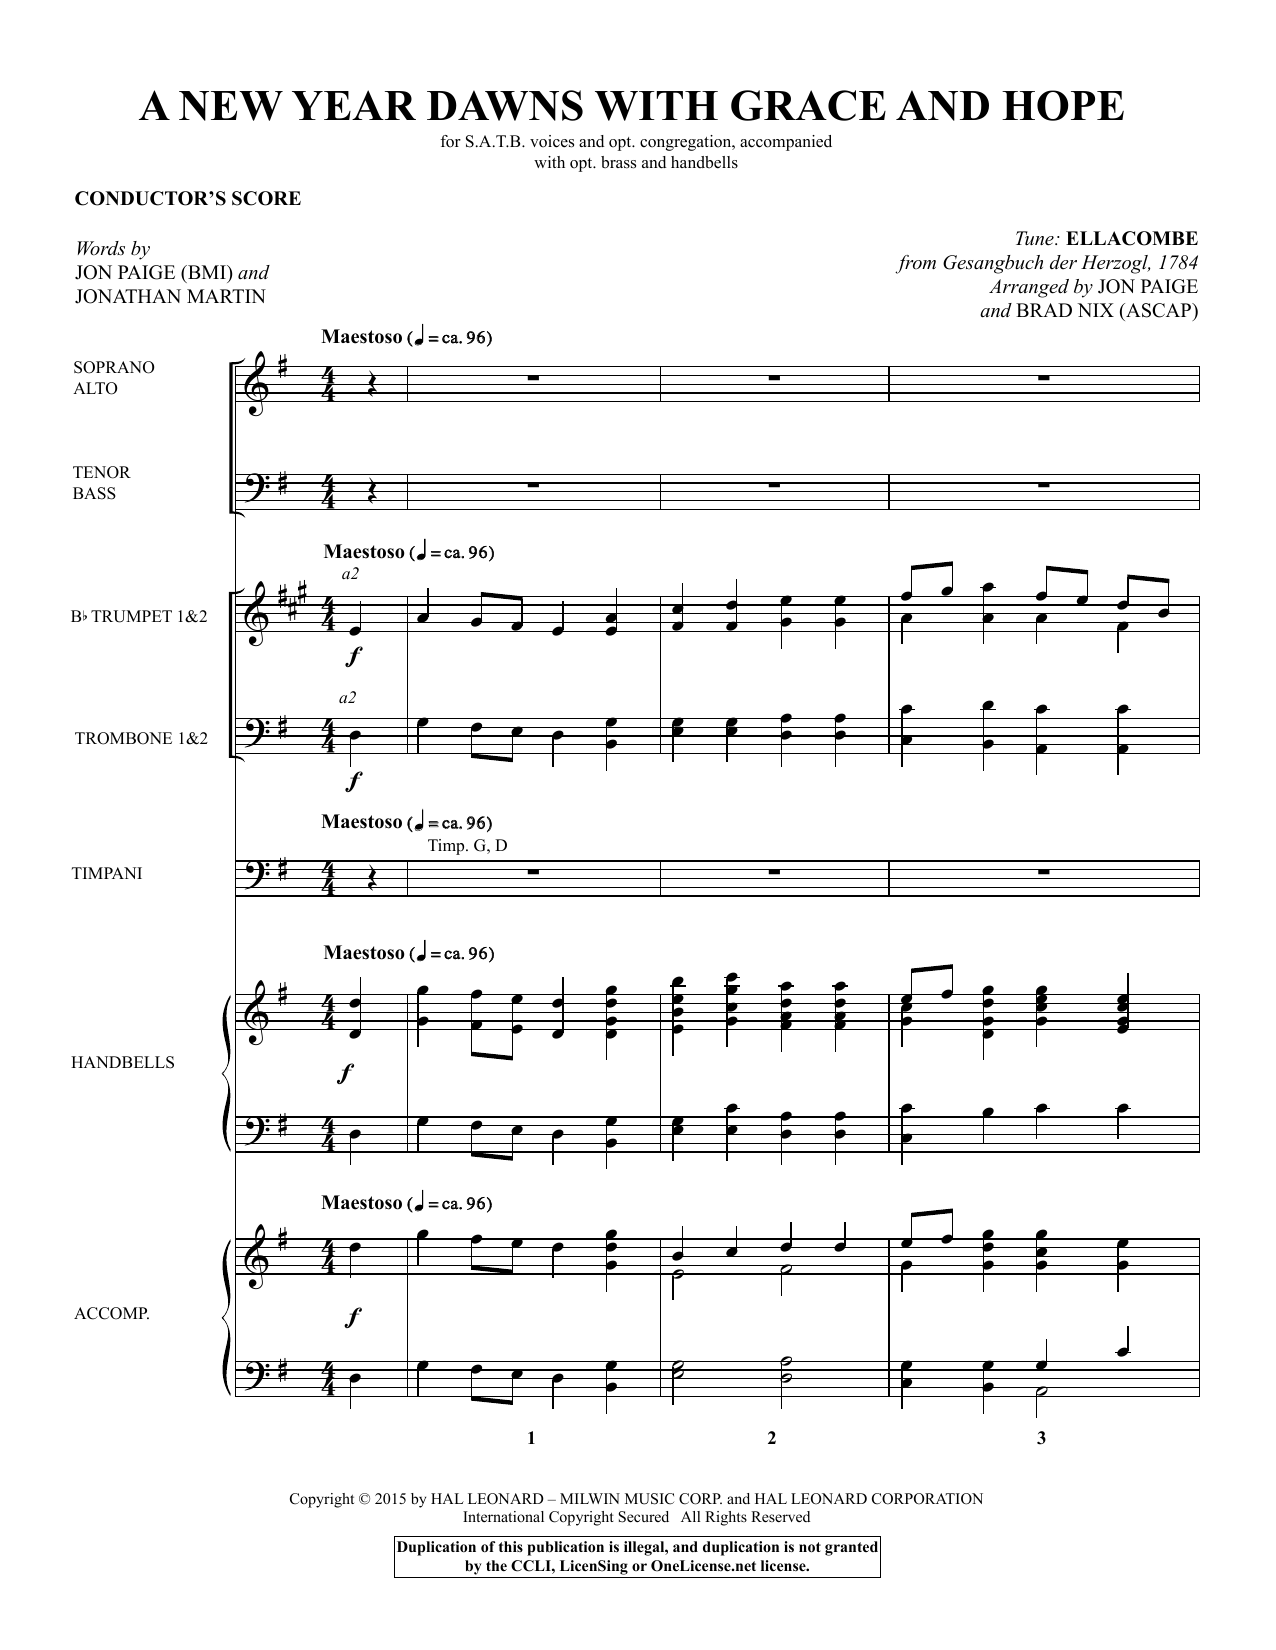 A New Year Dawns with Grace and Hope (COMPLETE) sheet music for orchestra/band by Brad Nix, Gesangbuch der Herzogl, Jon Paige and Jonathan Martin. Score Image Preview.